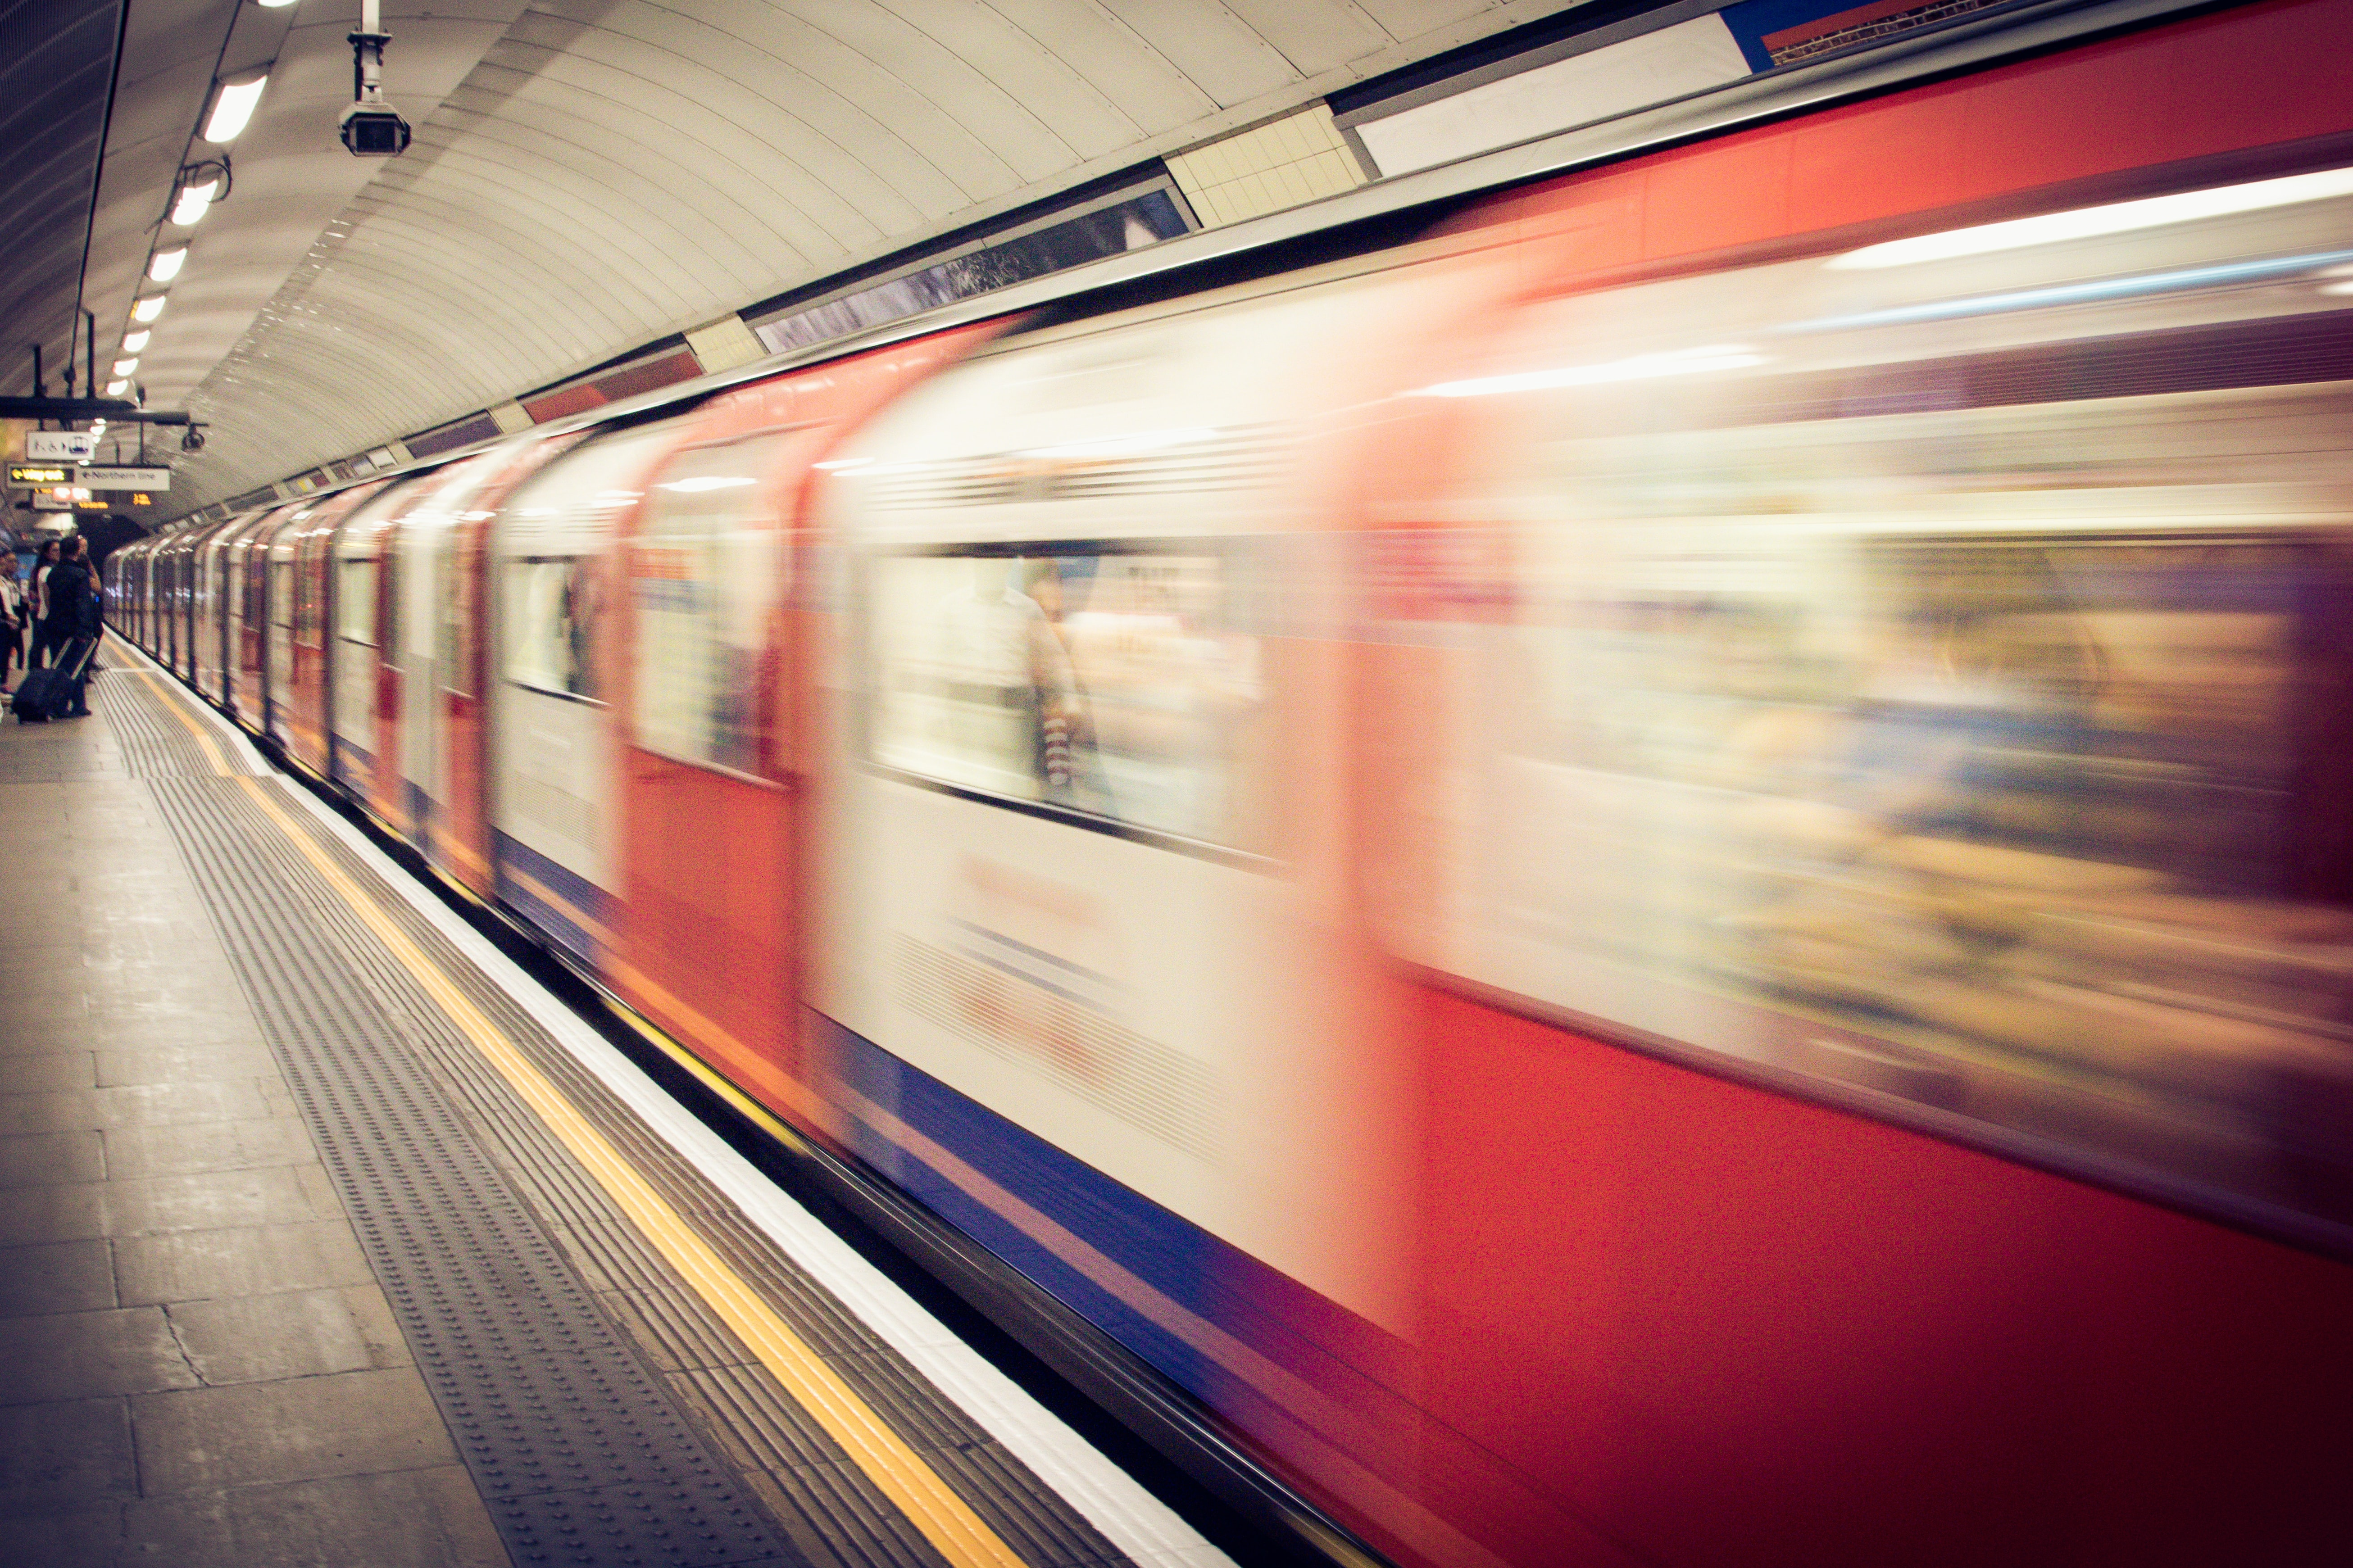 Tube train passing station with motion blur as passengers wait in the United Kingdom